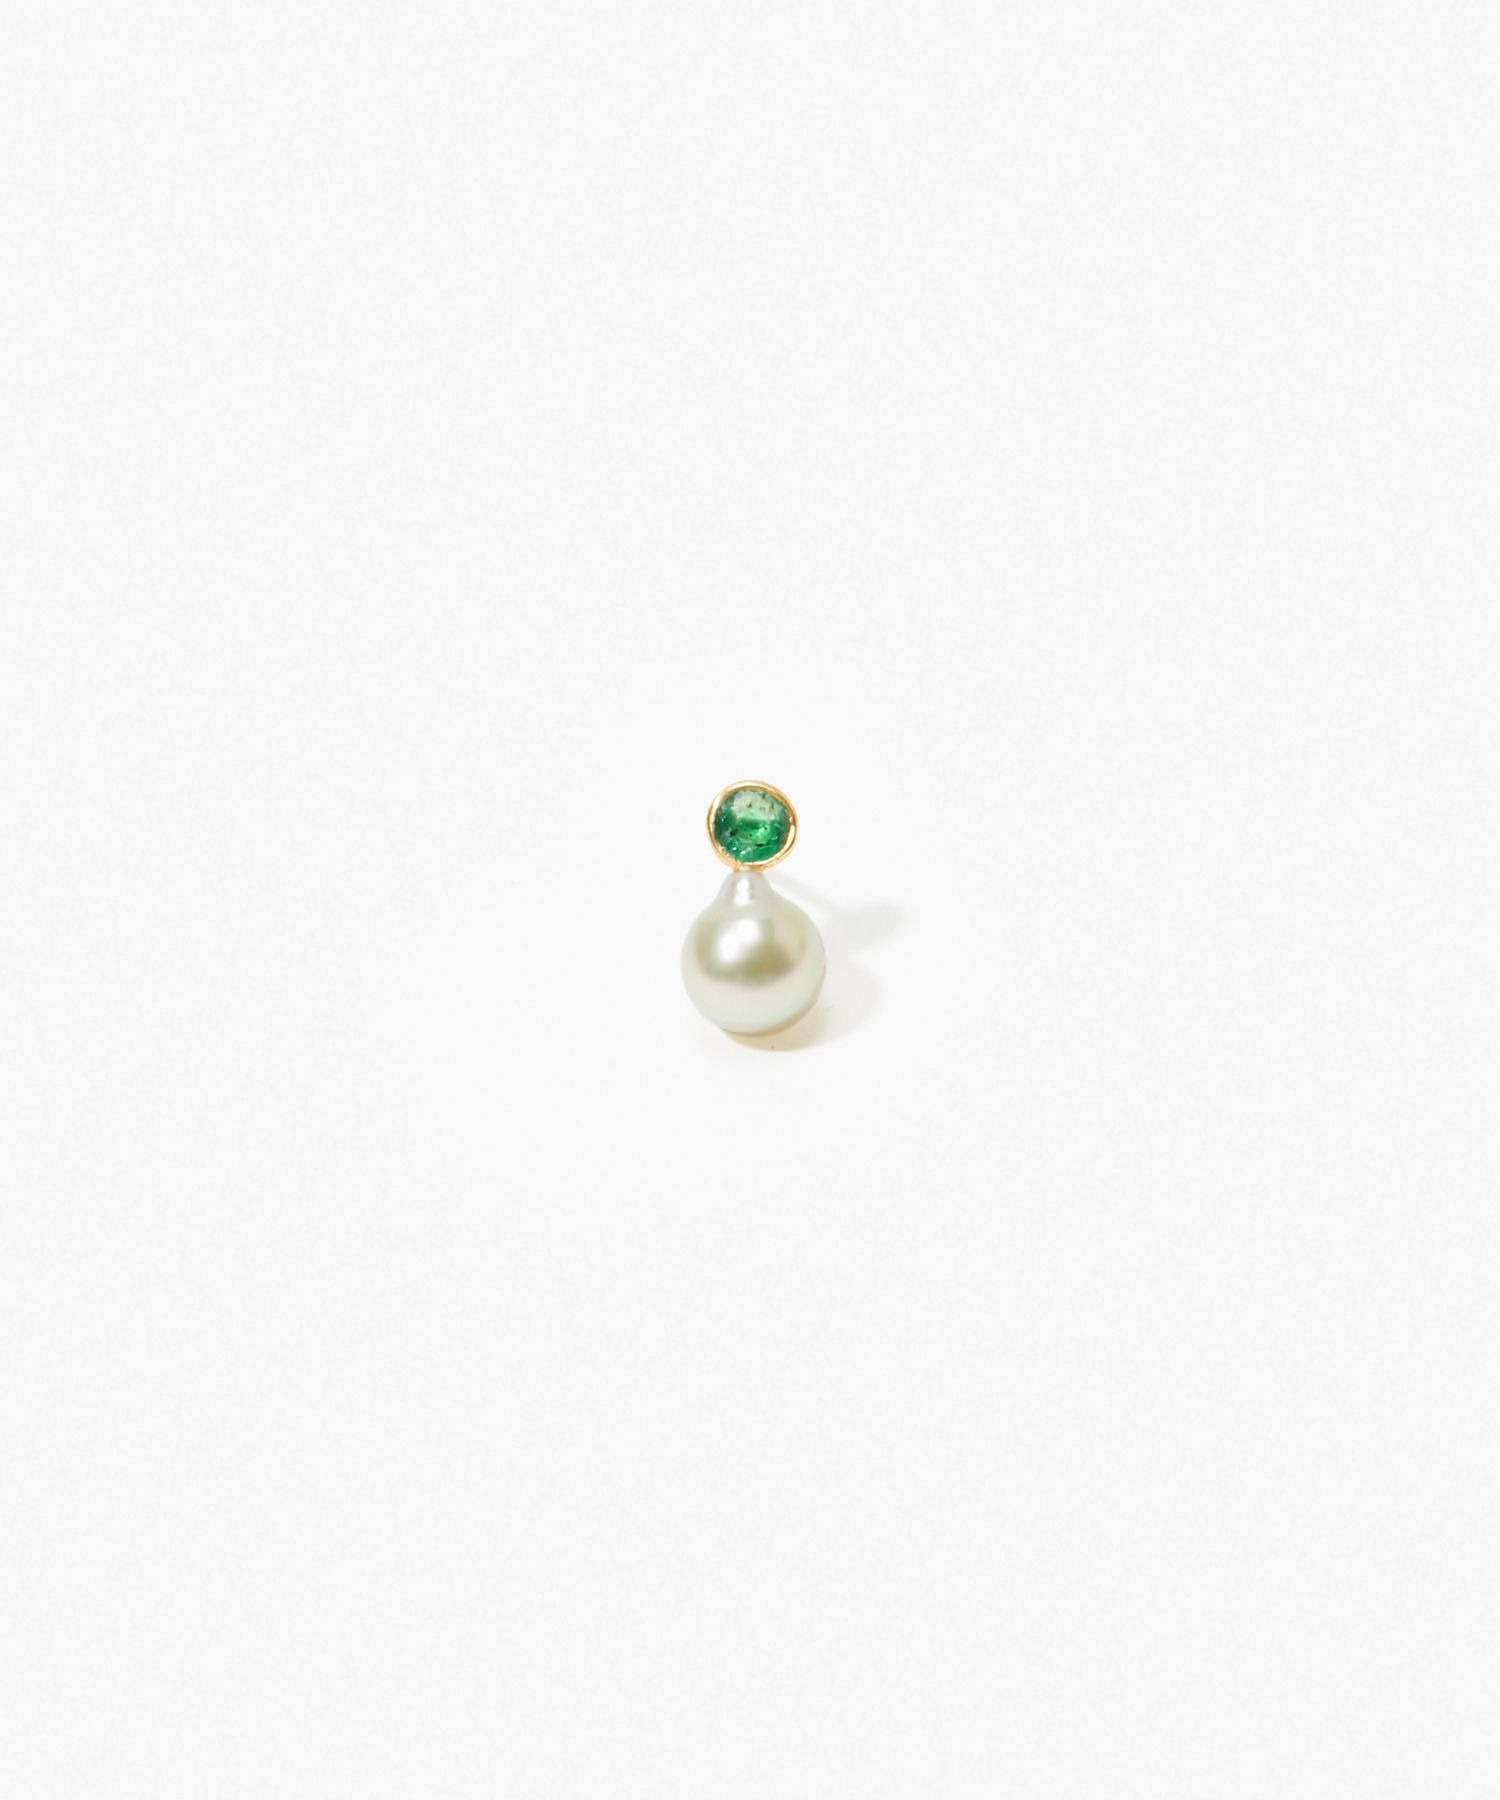 [philia] K10 akoya and round emerald stud pierced earring